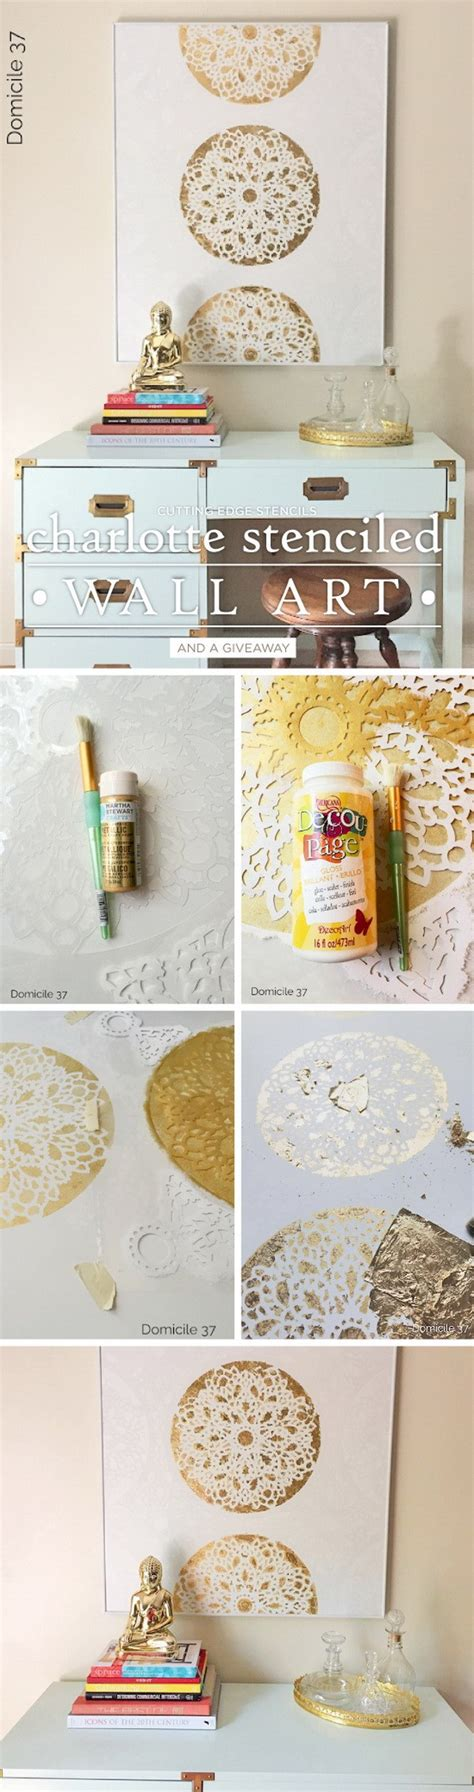 Diy Home Wall Decor Ideas 25 Stunning Diy Wall Ideas Tutorials For Creative Juice